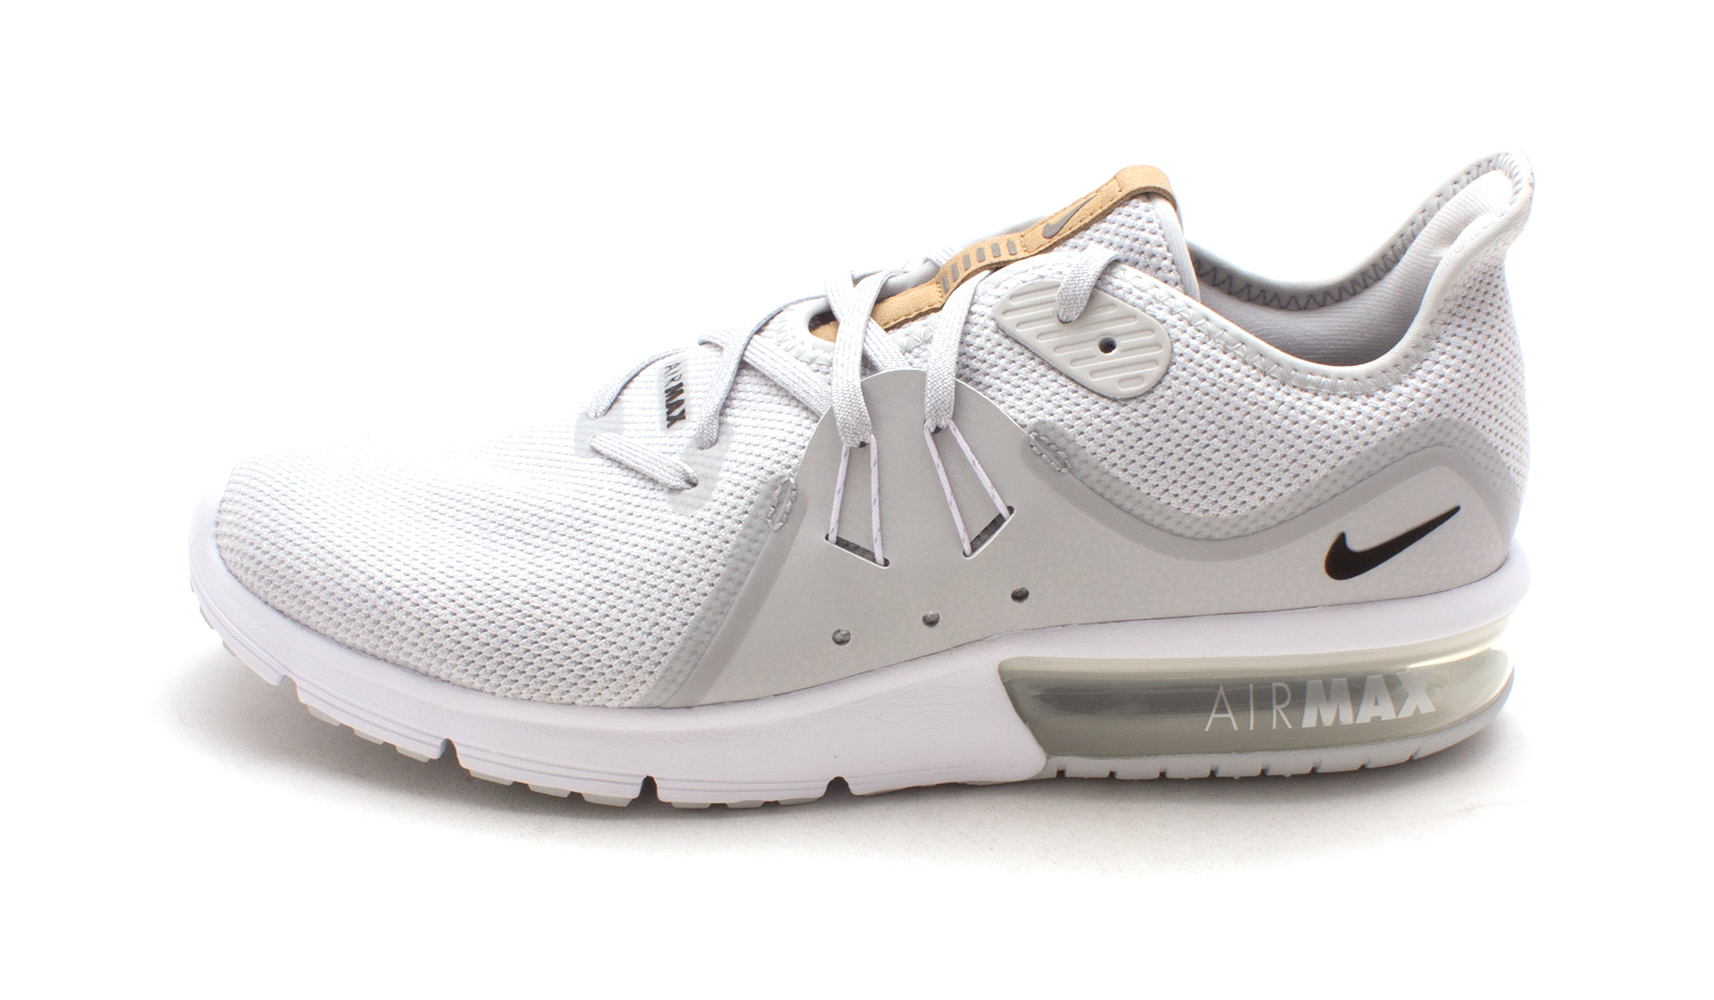 2ab695813d Details about Nike Womens Air Max Sequent 3 Low Top Lace, Pure Platinum/Black-White,  Size 8.5